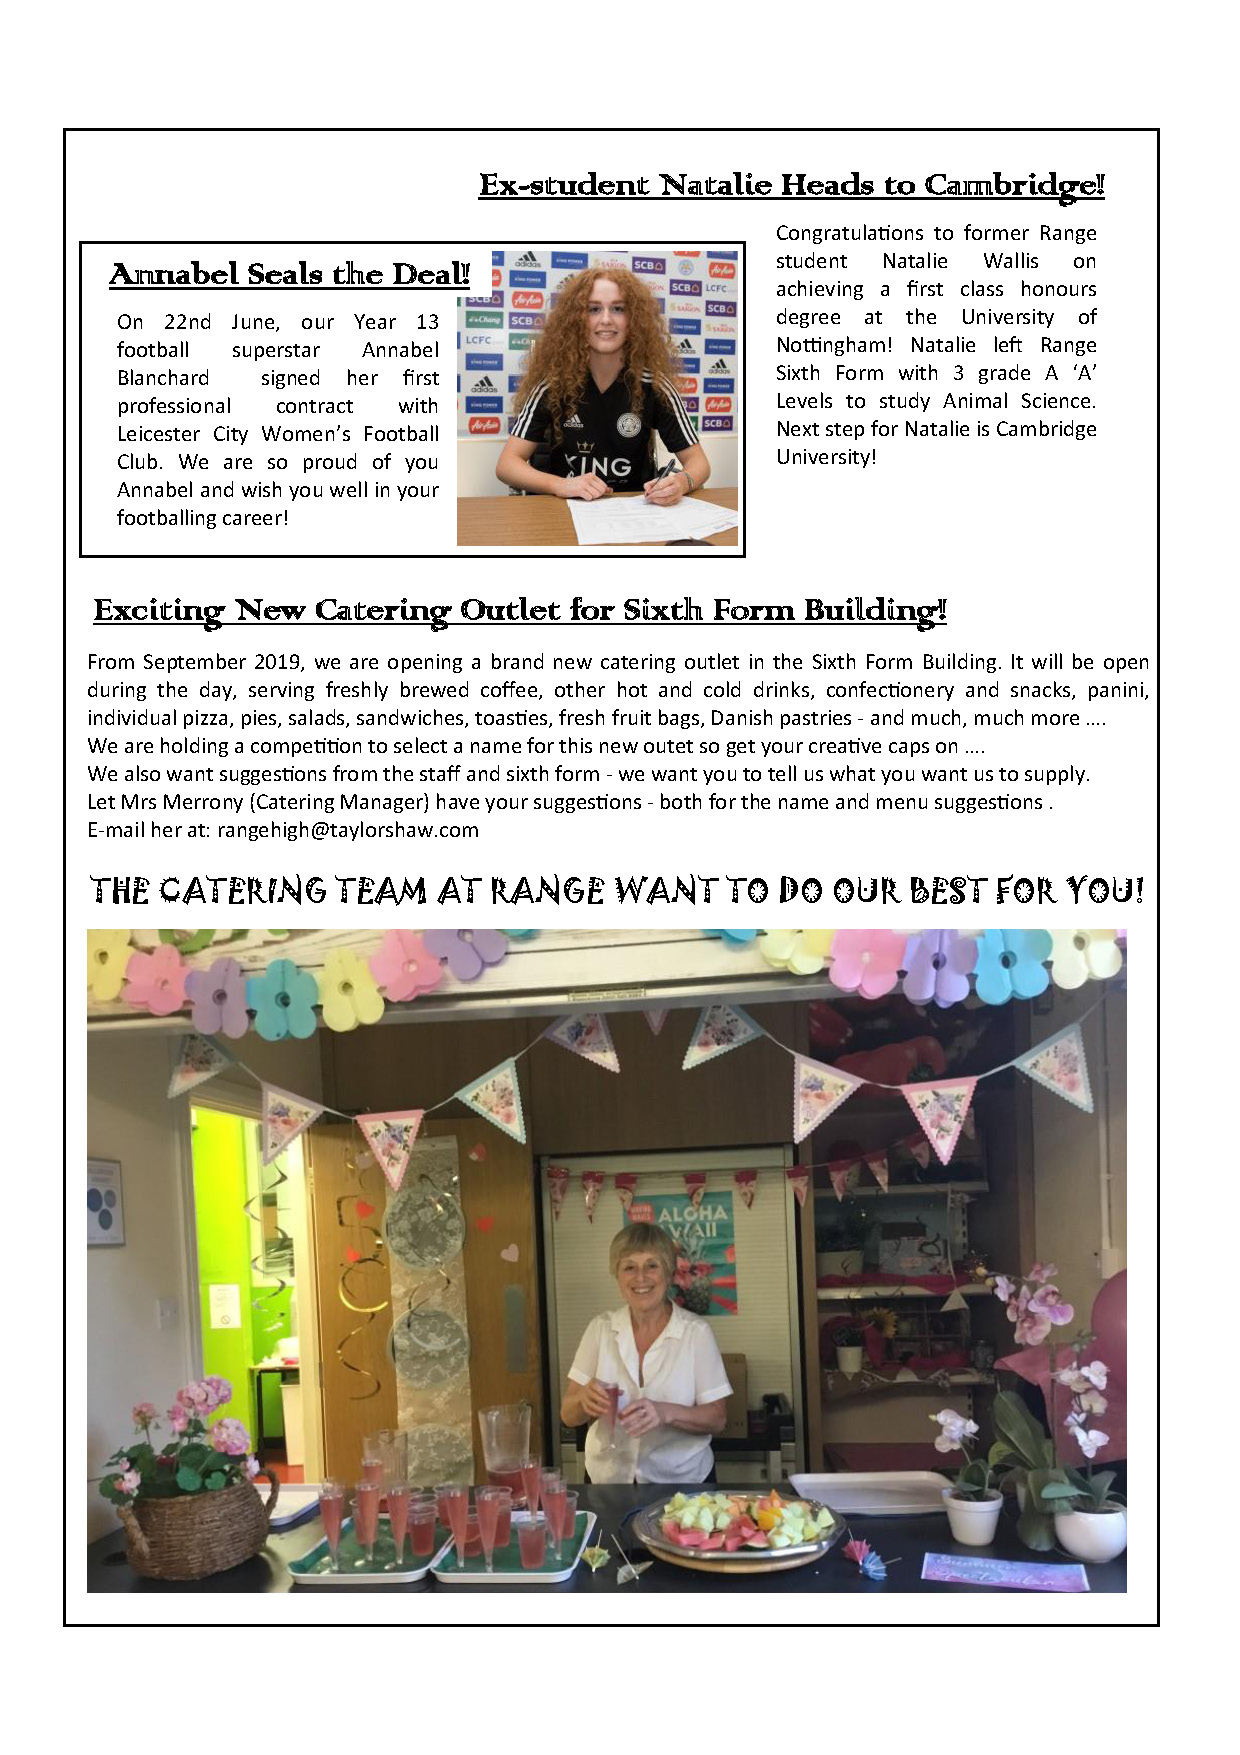 http://www.range.sefton.sch.uk/wp-content/uploads/2019/09/July-2019_Page_3.jpg